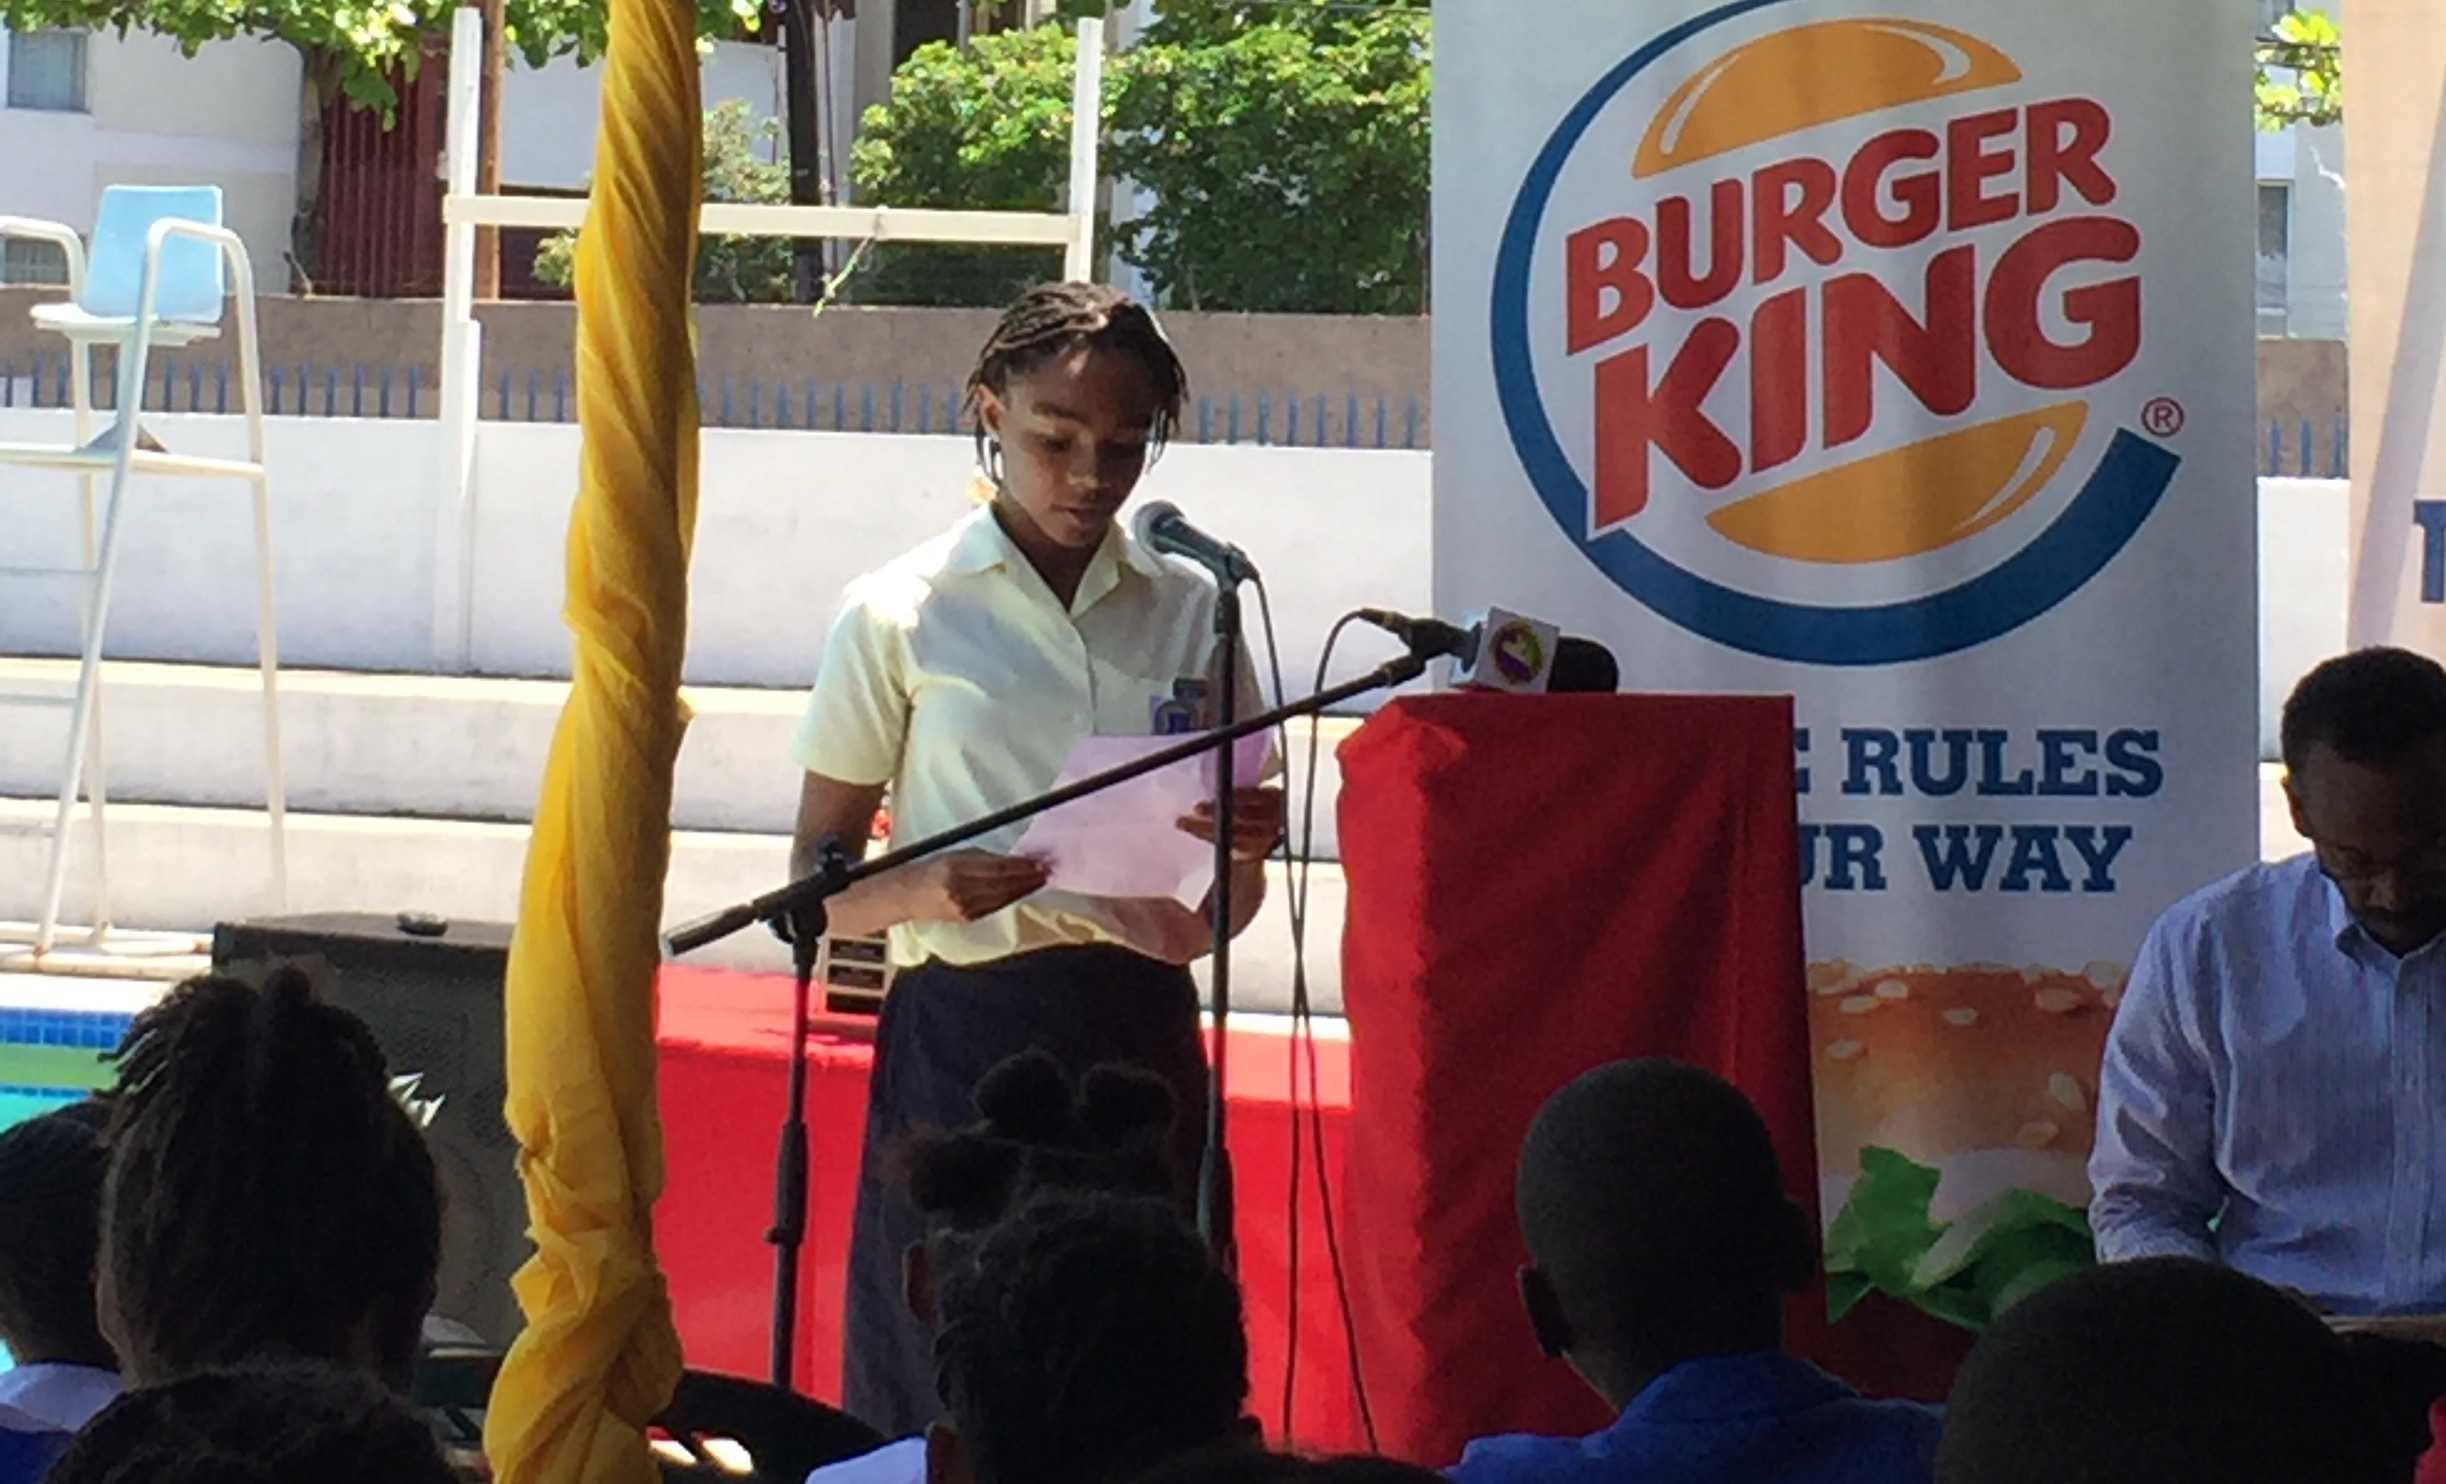 Swimmers attended the media launch of the Burger King Swim